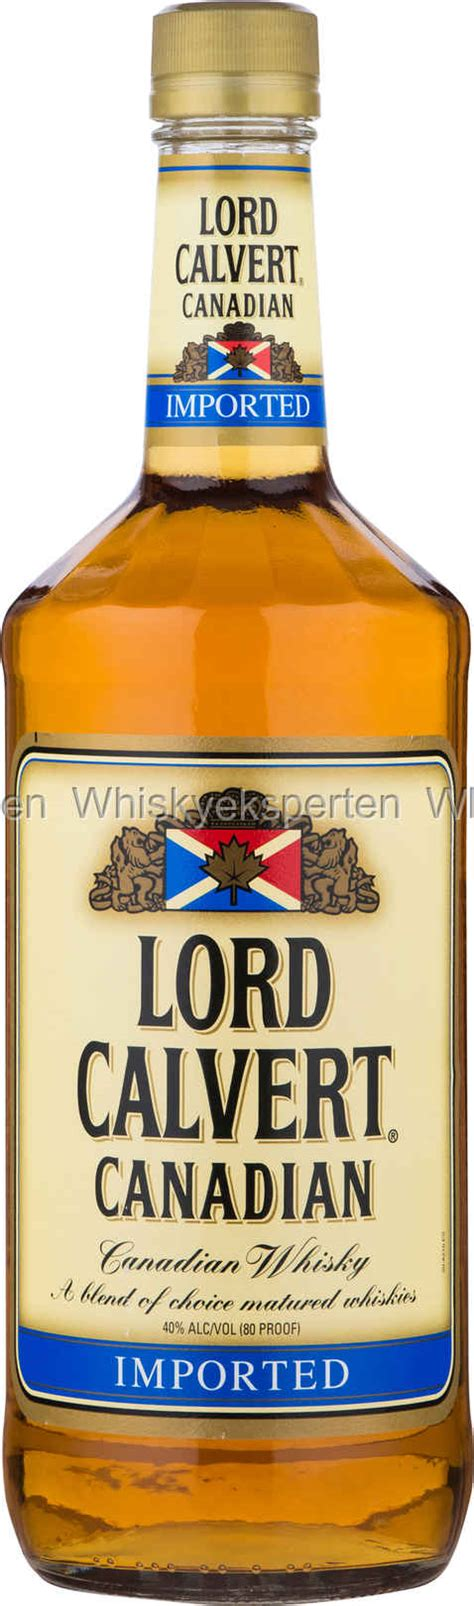 Lord Calvert Canadisk Whisky